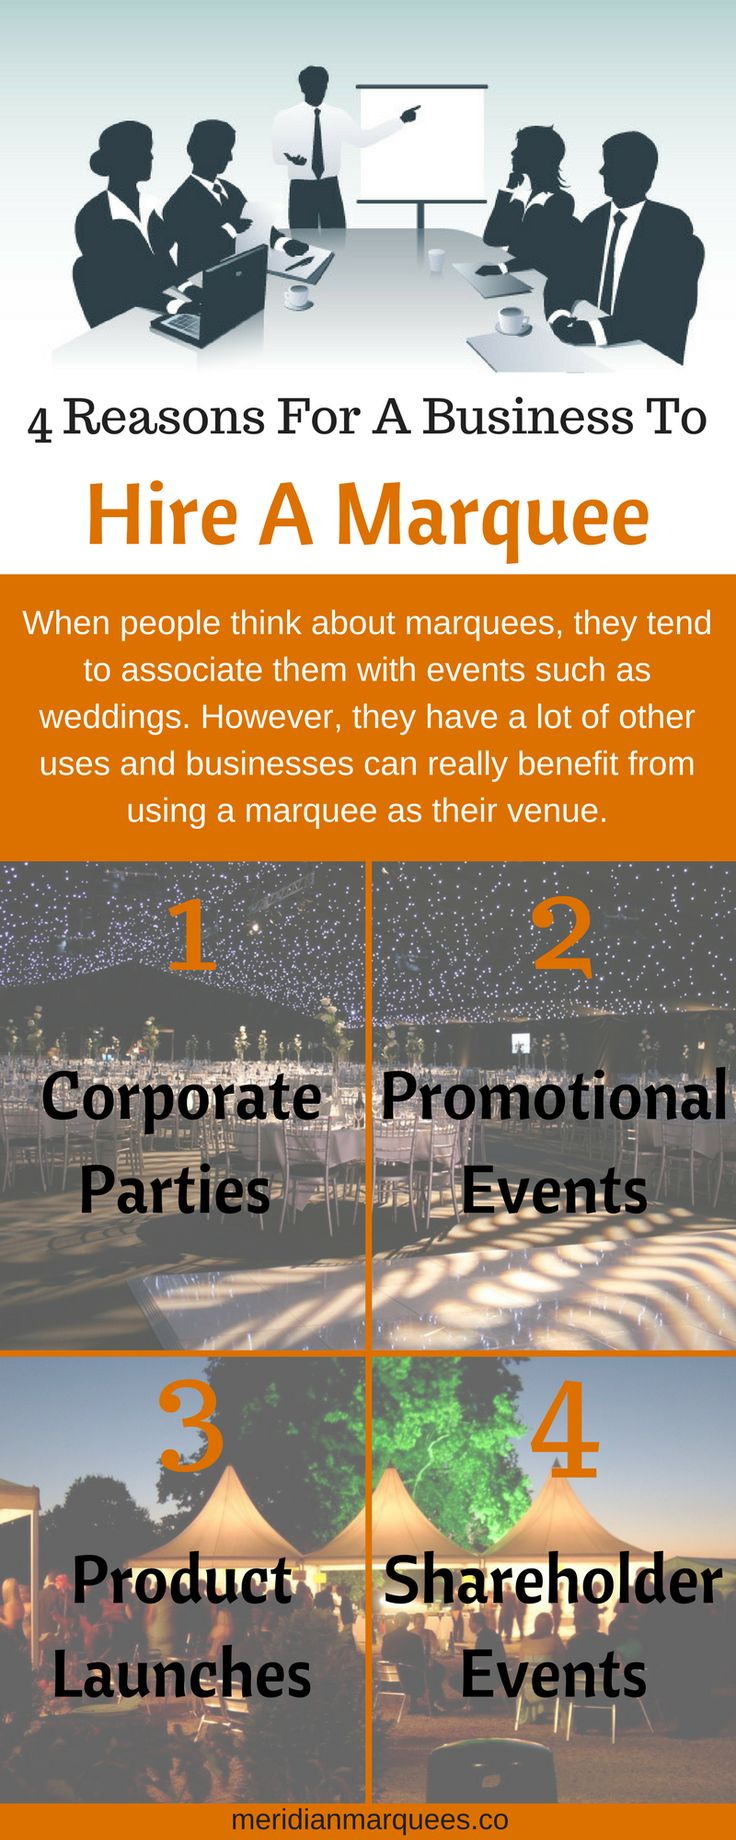 Learn more about some of the best reasons for a business to hire a marquee in this infographic. View the original infographic here: https://www.canva.com/design/DACaWSFkYfs/qh2aunA4bCPQZvvX7fZ-zg/view?utm_content=DACaWSFkYfs&utm_campaign=designshare&utm_medium=link&utm_source=sharebutton  Also, to find out more about why your business should hire a marquee, visit http://meridianmarquees.co/services-corporate-marquees.php  Contact Us: Unit A, Parsons Farm,  Church Lane,  Farley Hill…